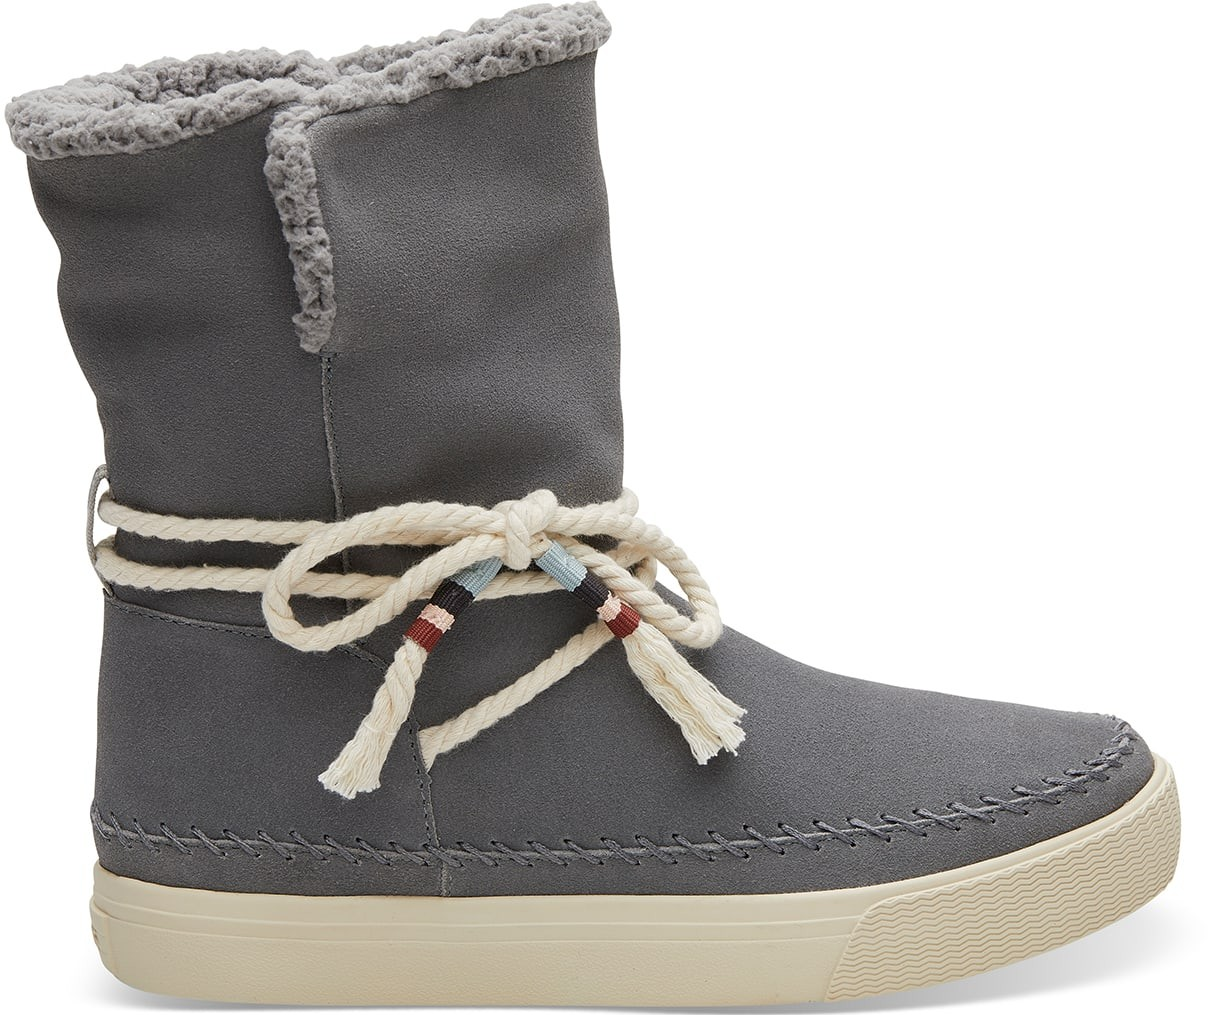 Toms Shade Suede Women's Vista - Size UK7.5 / US9.5 Boot